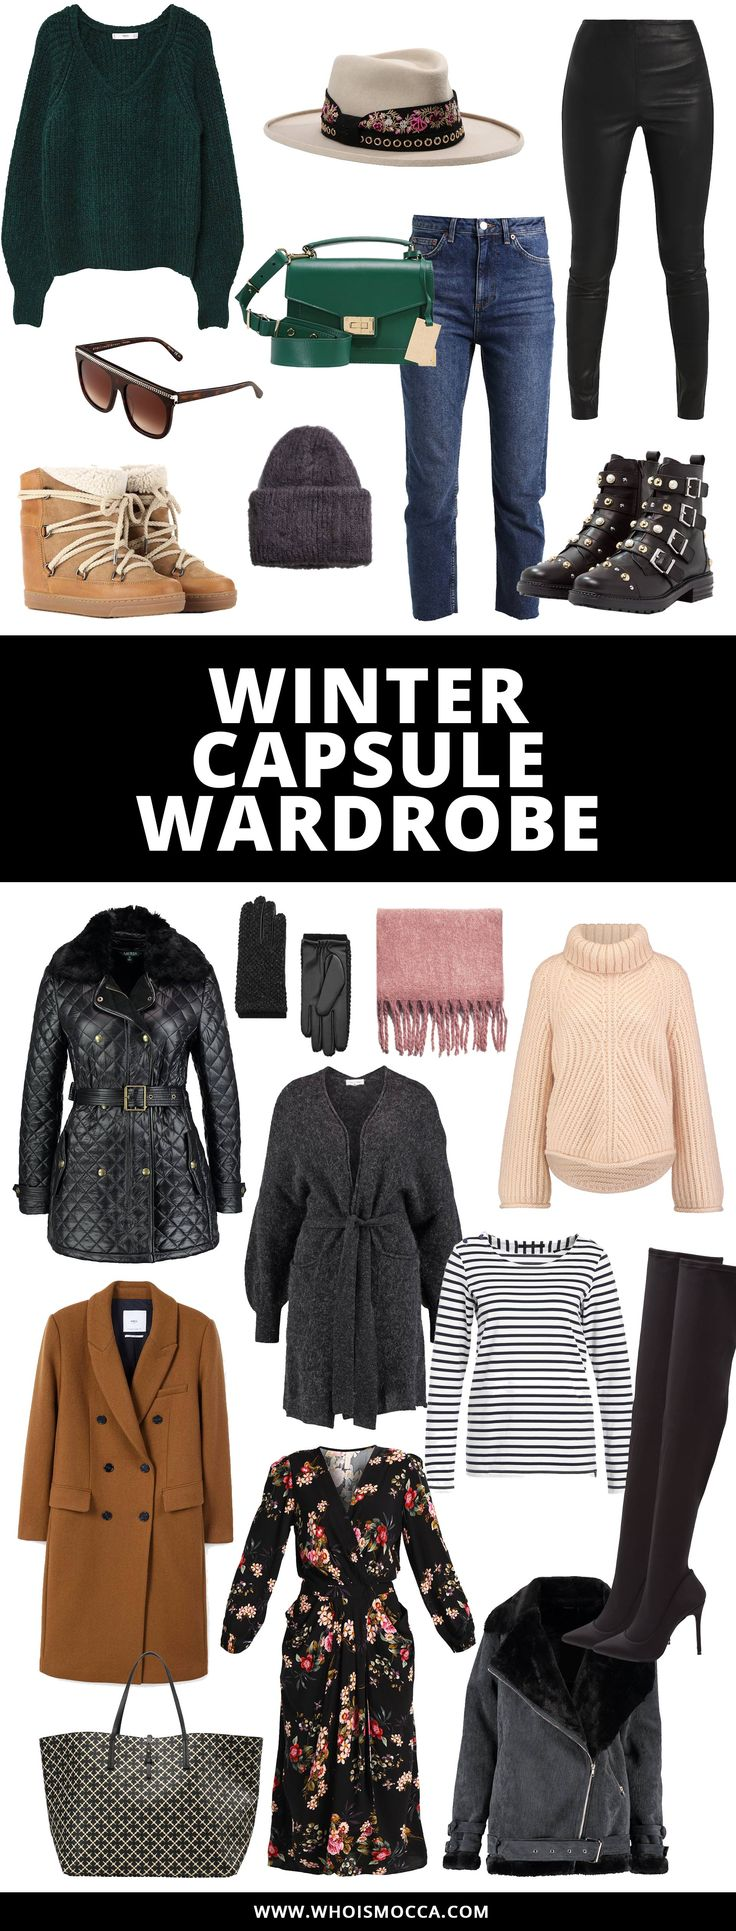 Winter Capsule Wardrobe, Winter Outfit Ideen, Winter Must haves, Fashion Blog, Modeblog, Style Blog, www.whoismocca.com